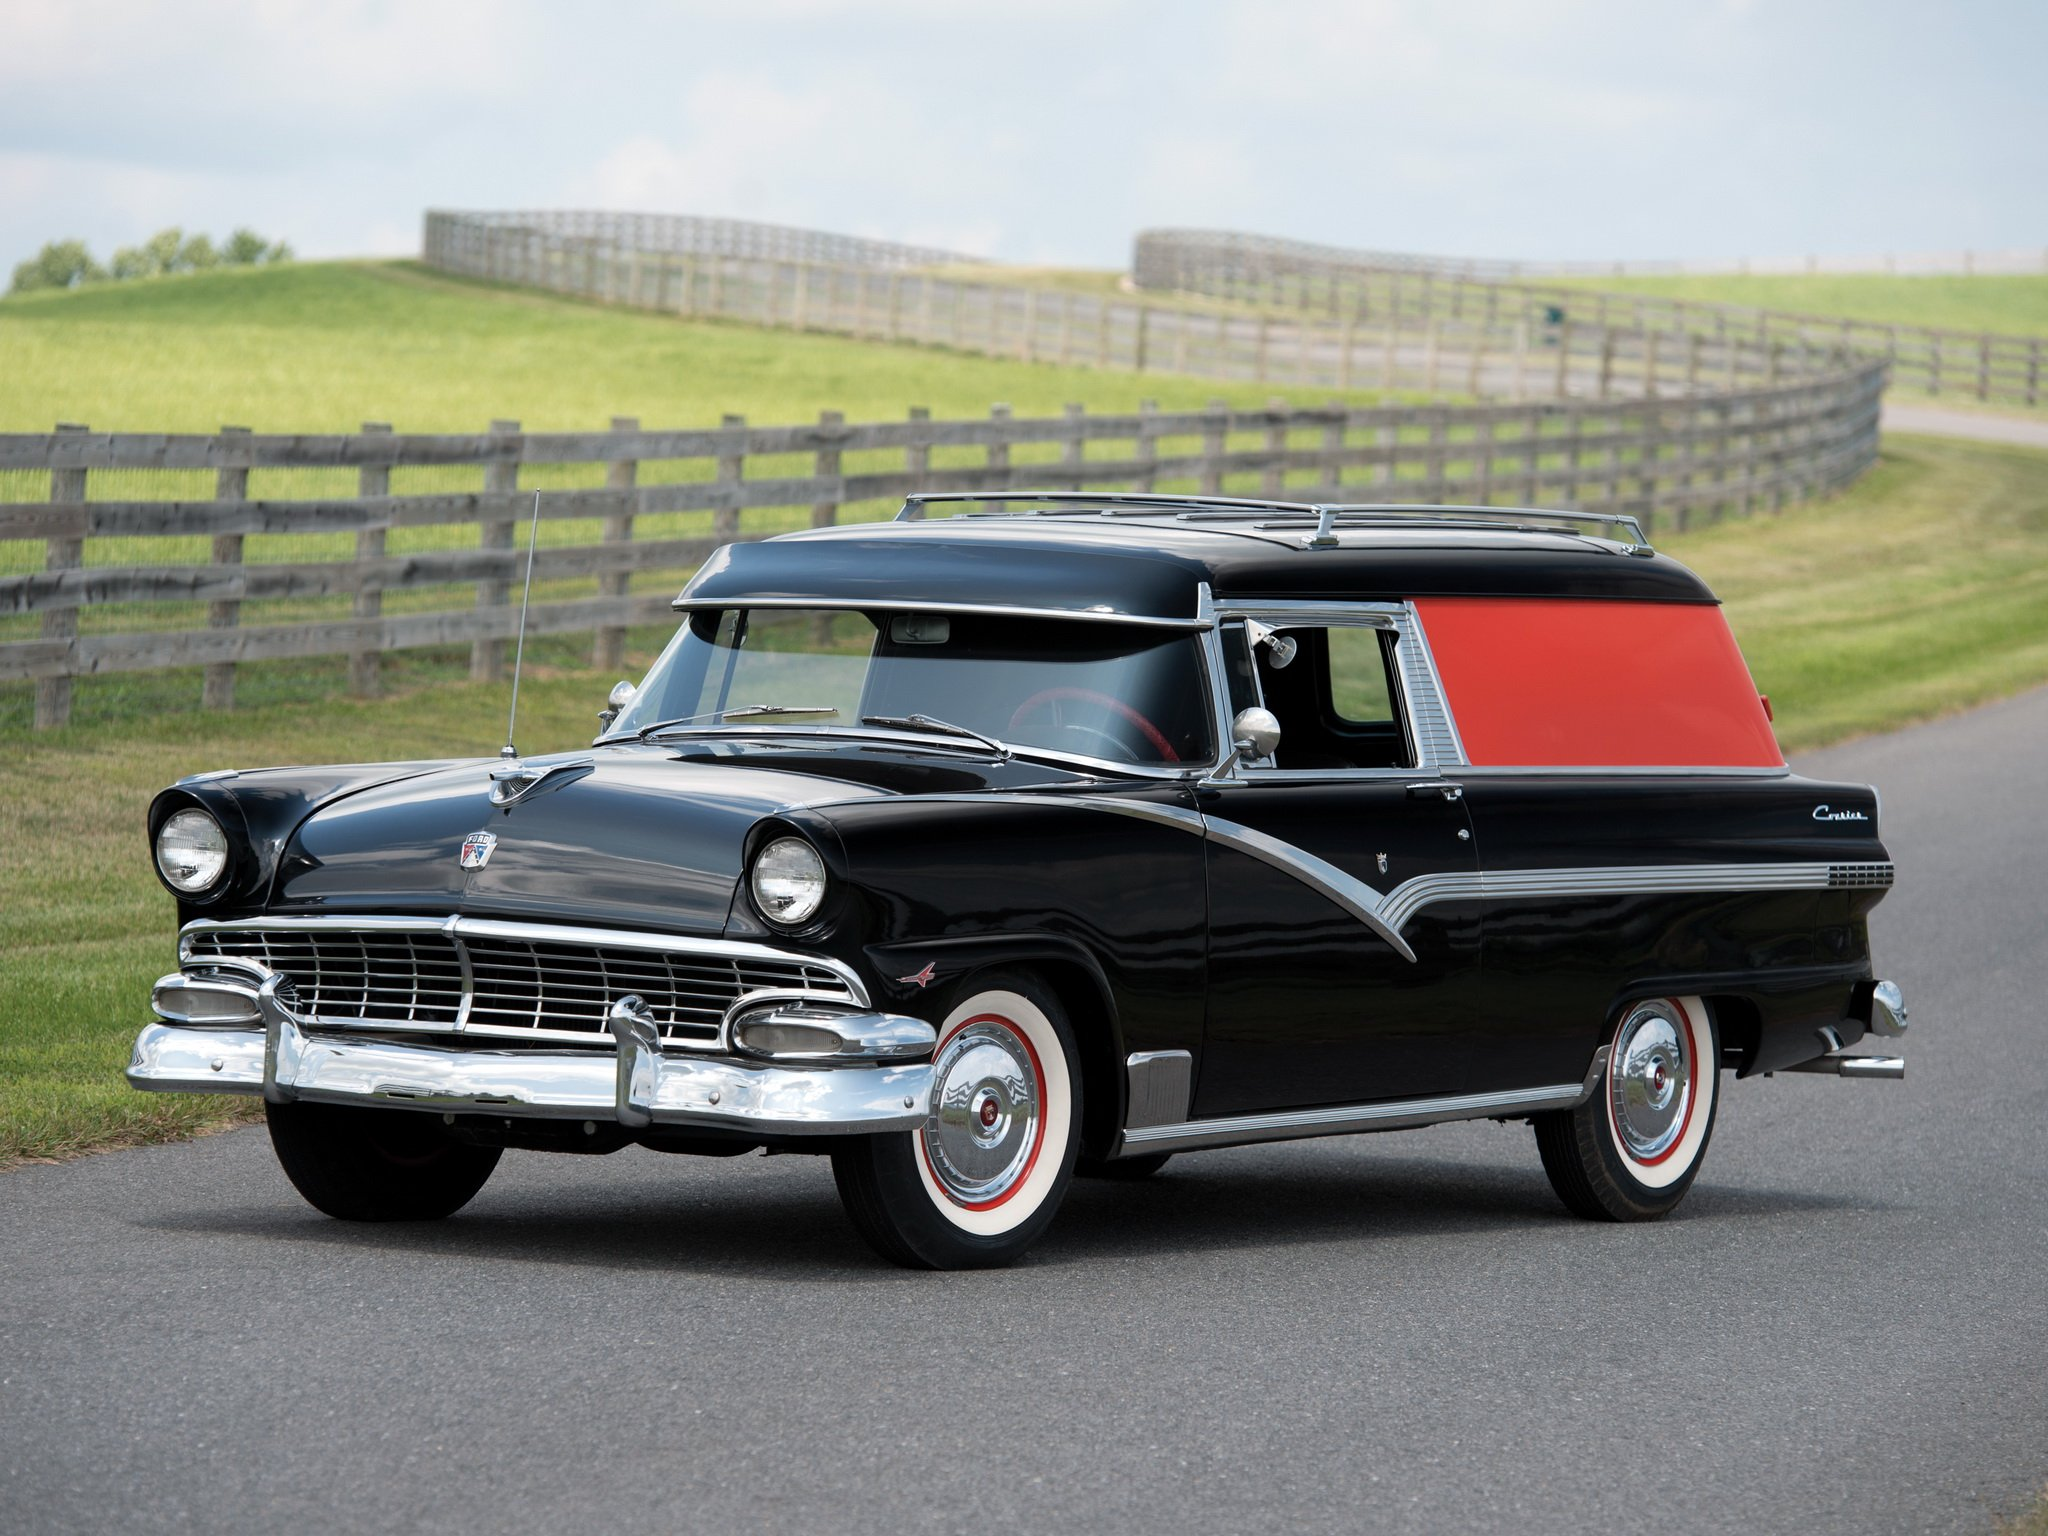 1956 Ford Courier Sedan Delivery Stationwagon Retro